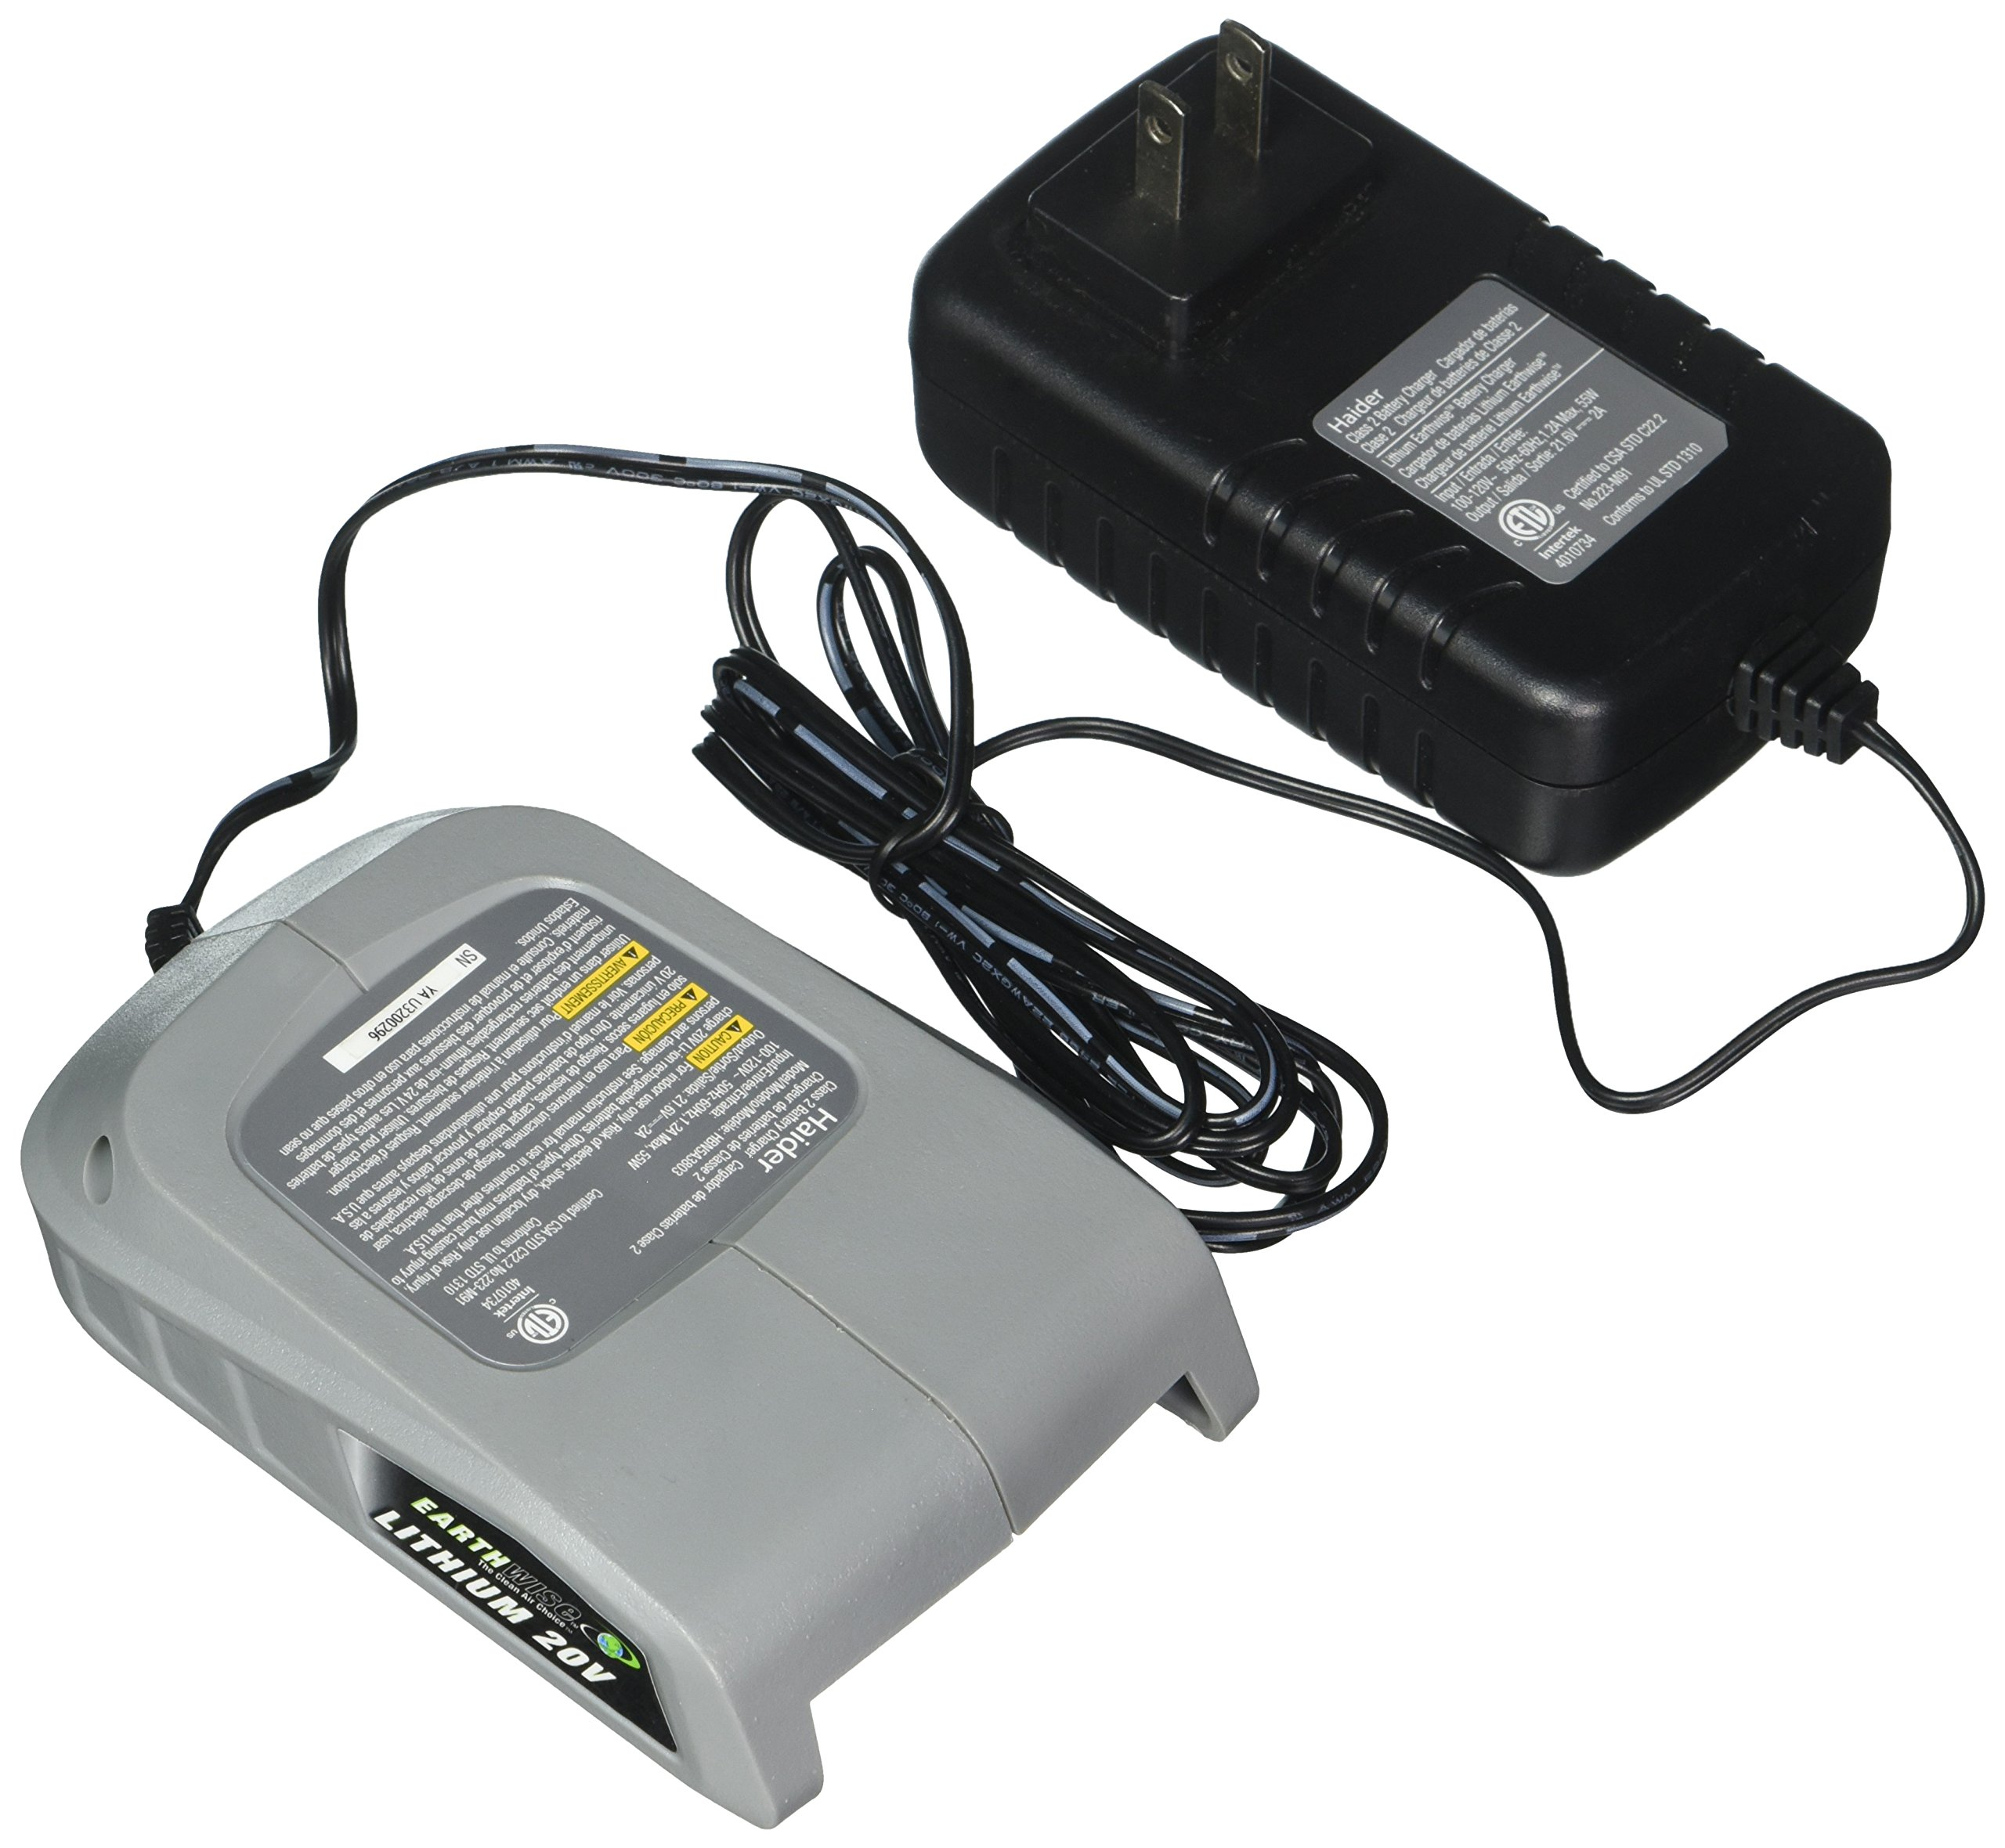 Earthwise CHL90020 20-Volt Lithium Ion Battery Charger - Charges All 20-Volt Batteries